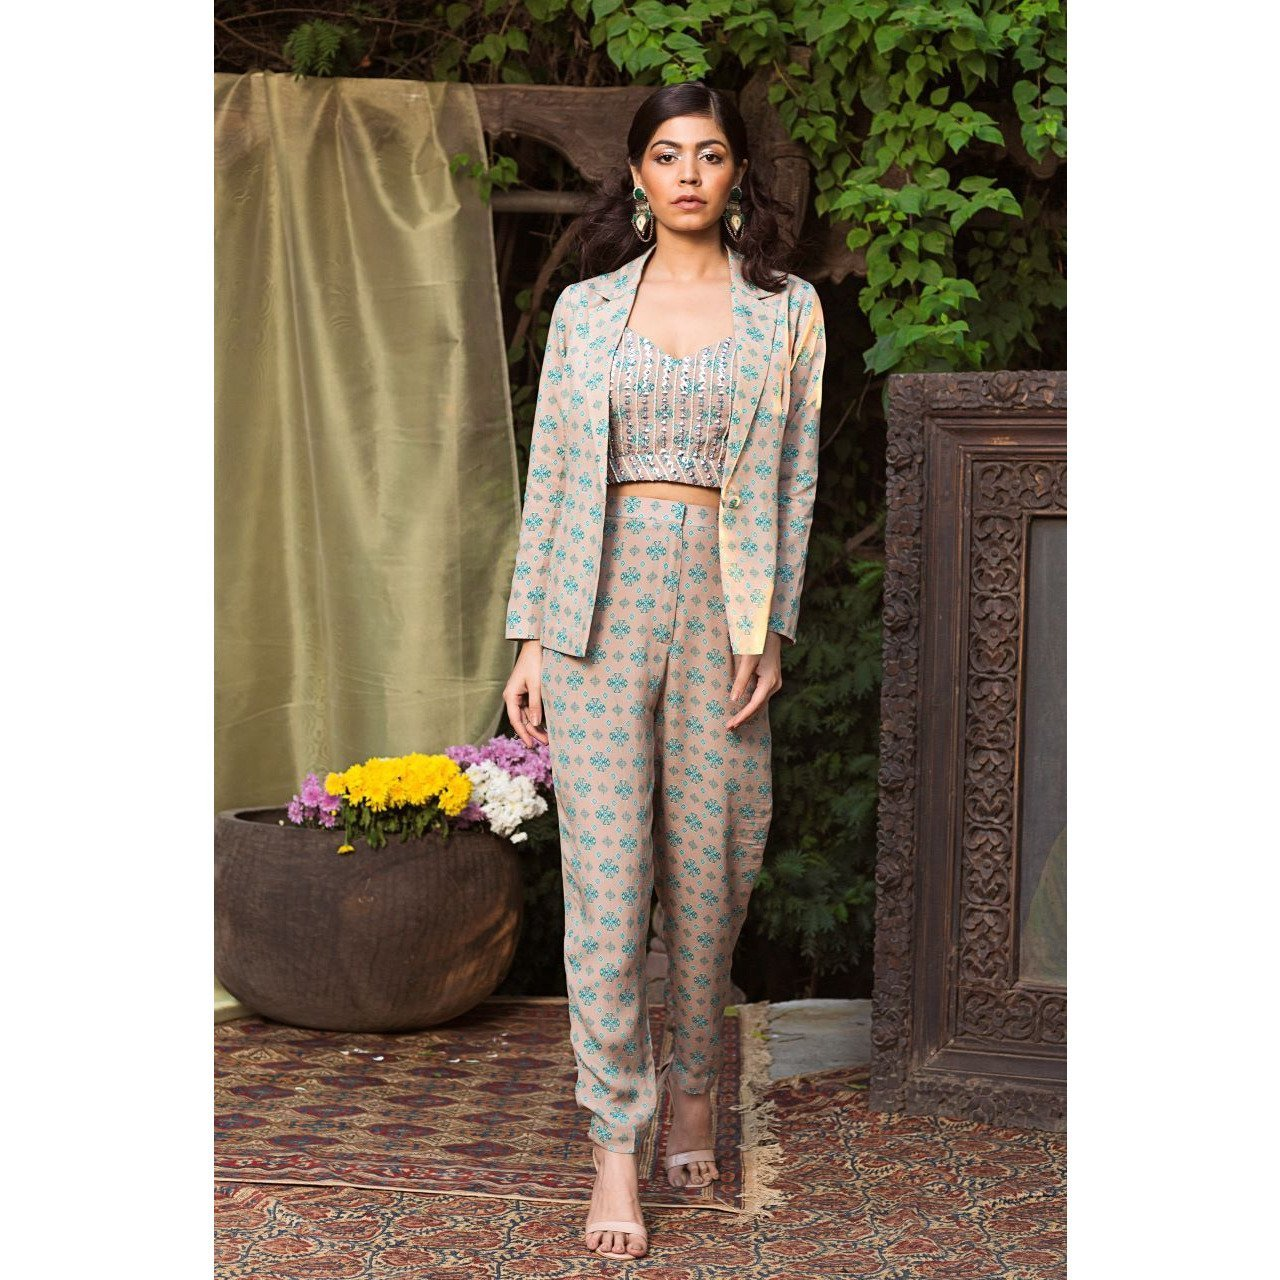 Grey and teal printed pant suit Chhavvi Aggarwal